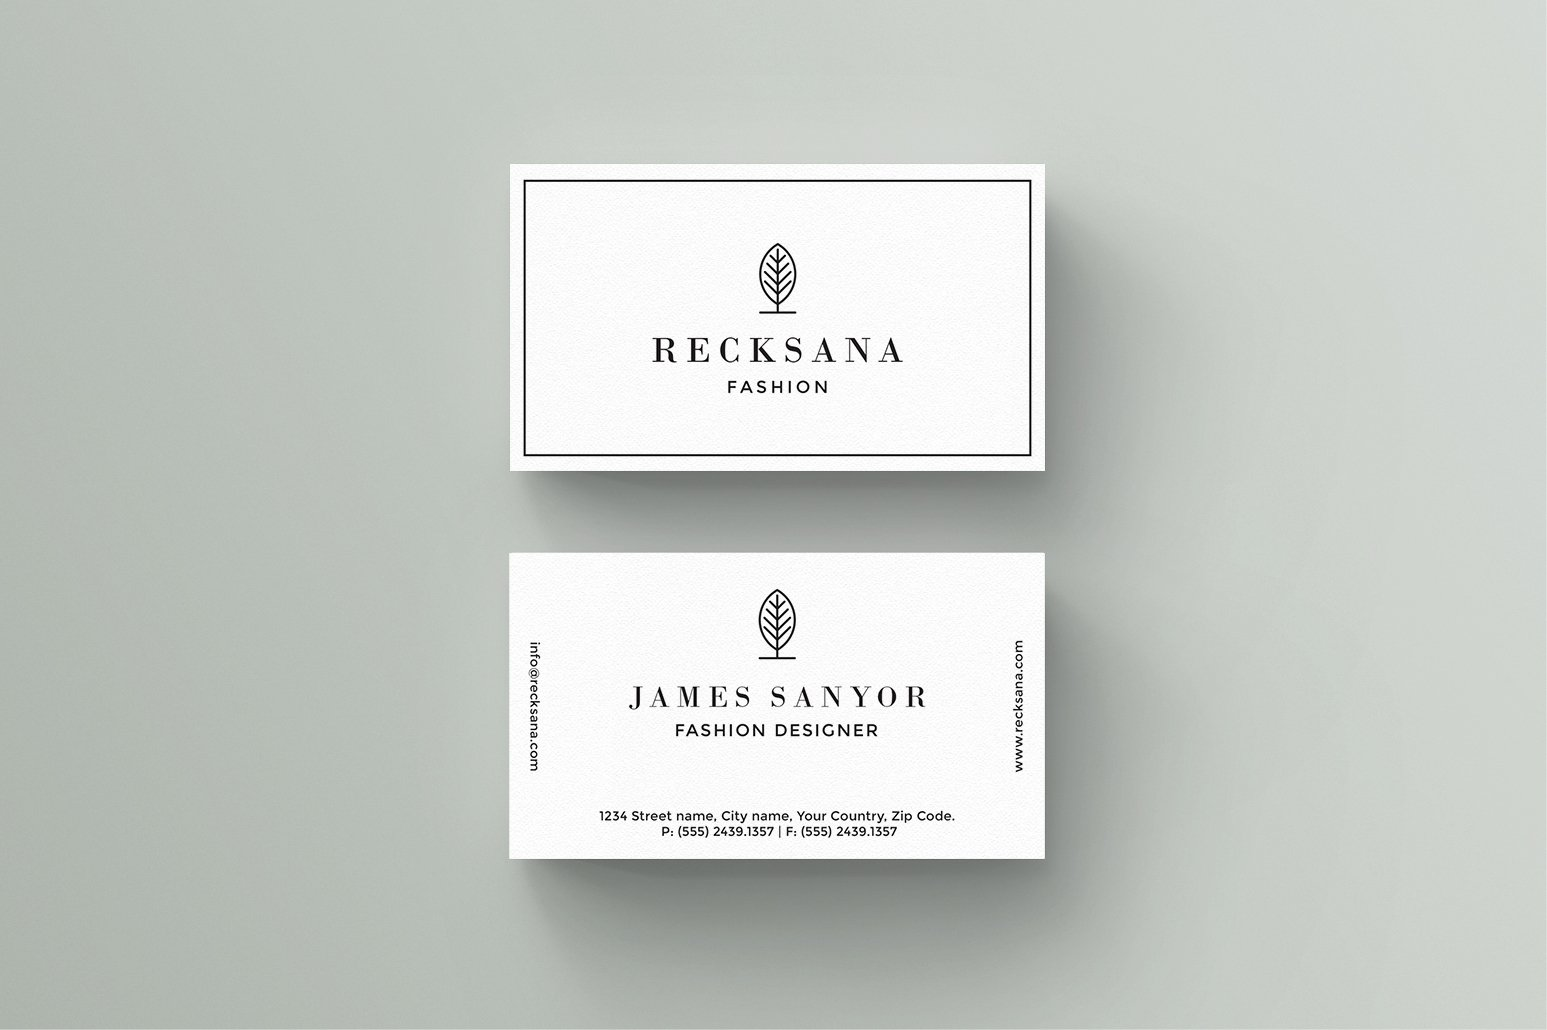 J u n i p e r business card template business card templates recksana business card template cheaphphosting Image collections